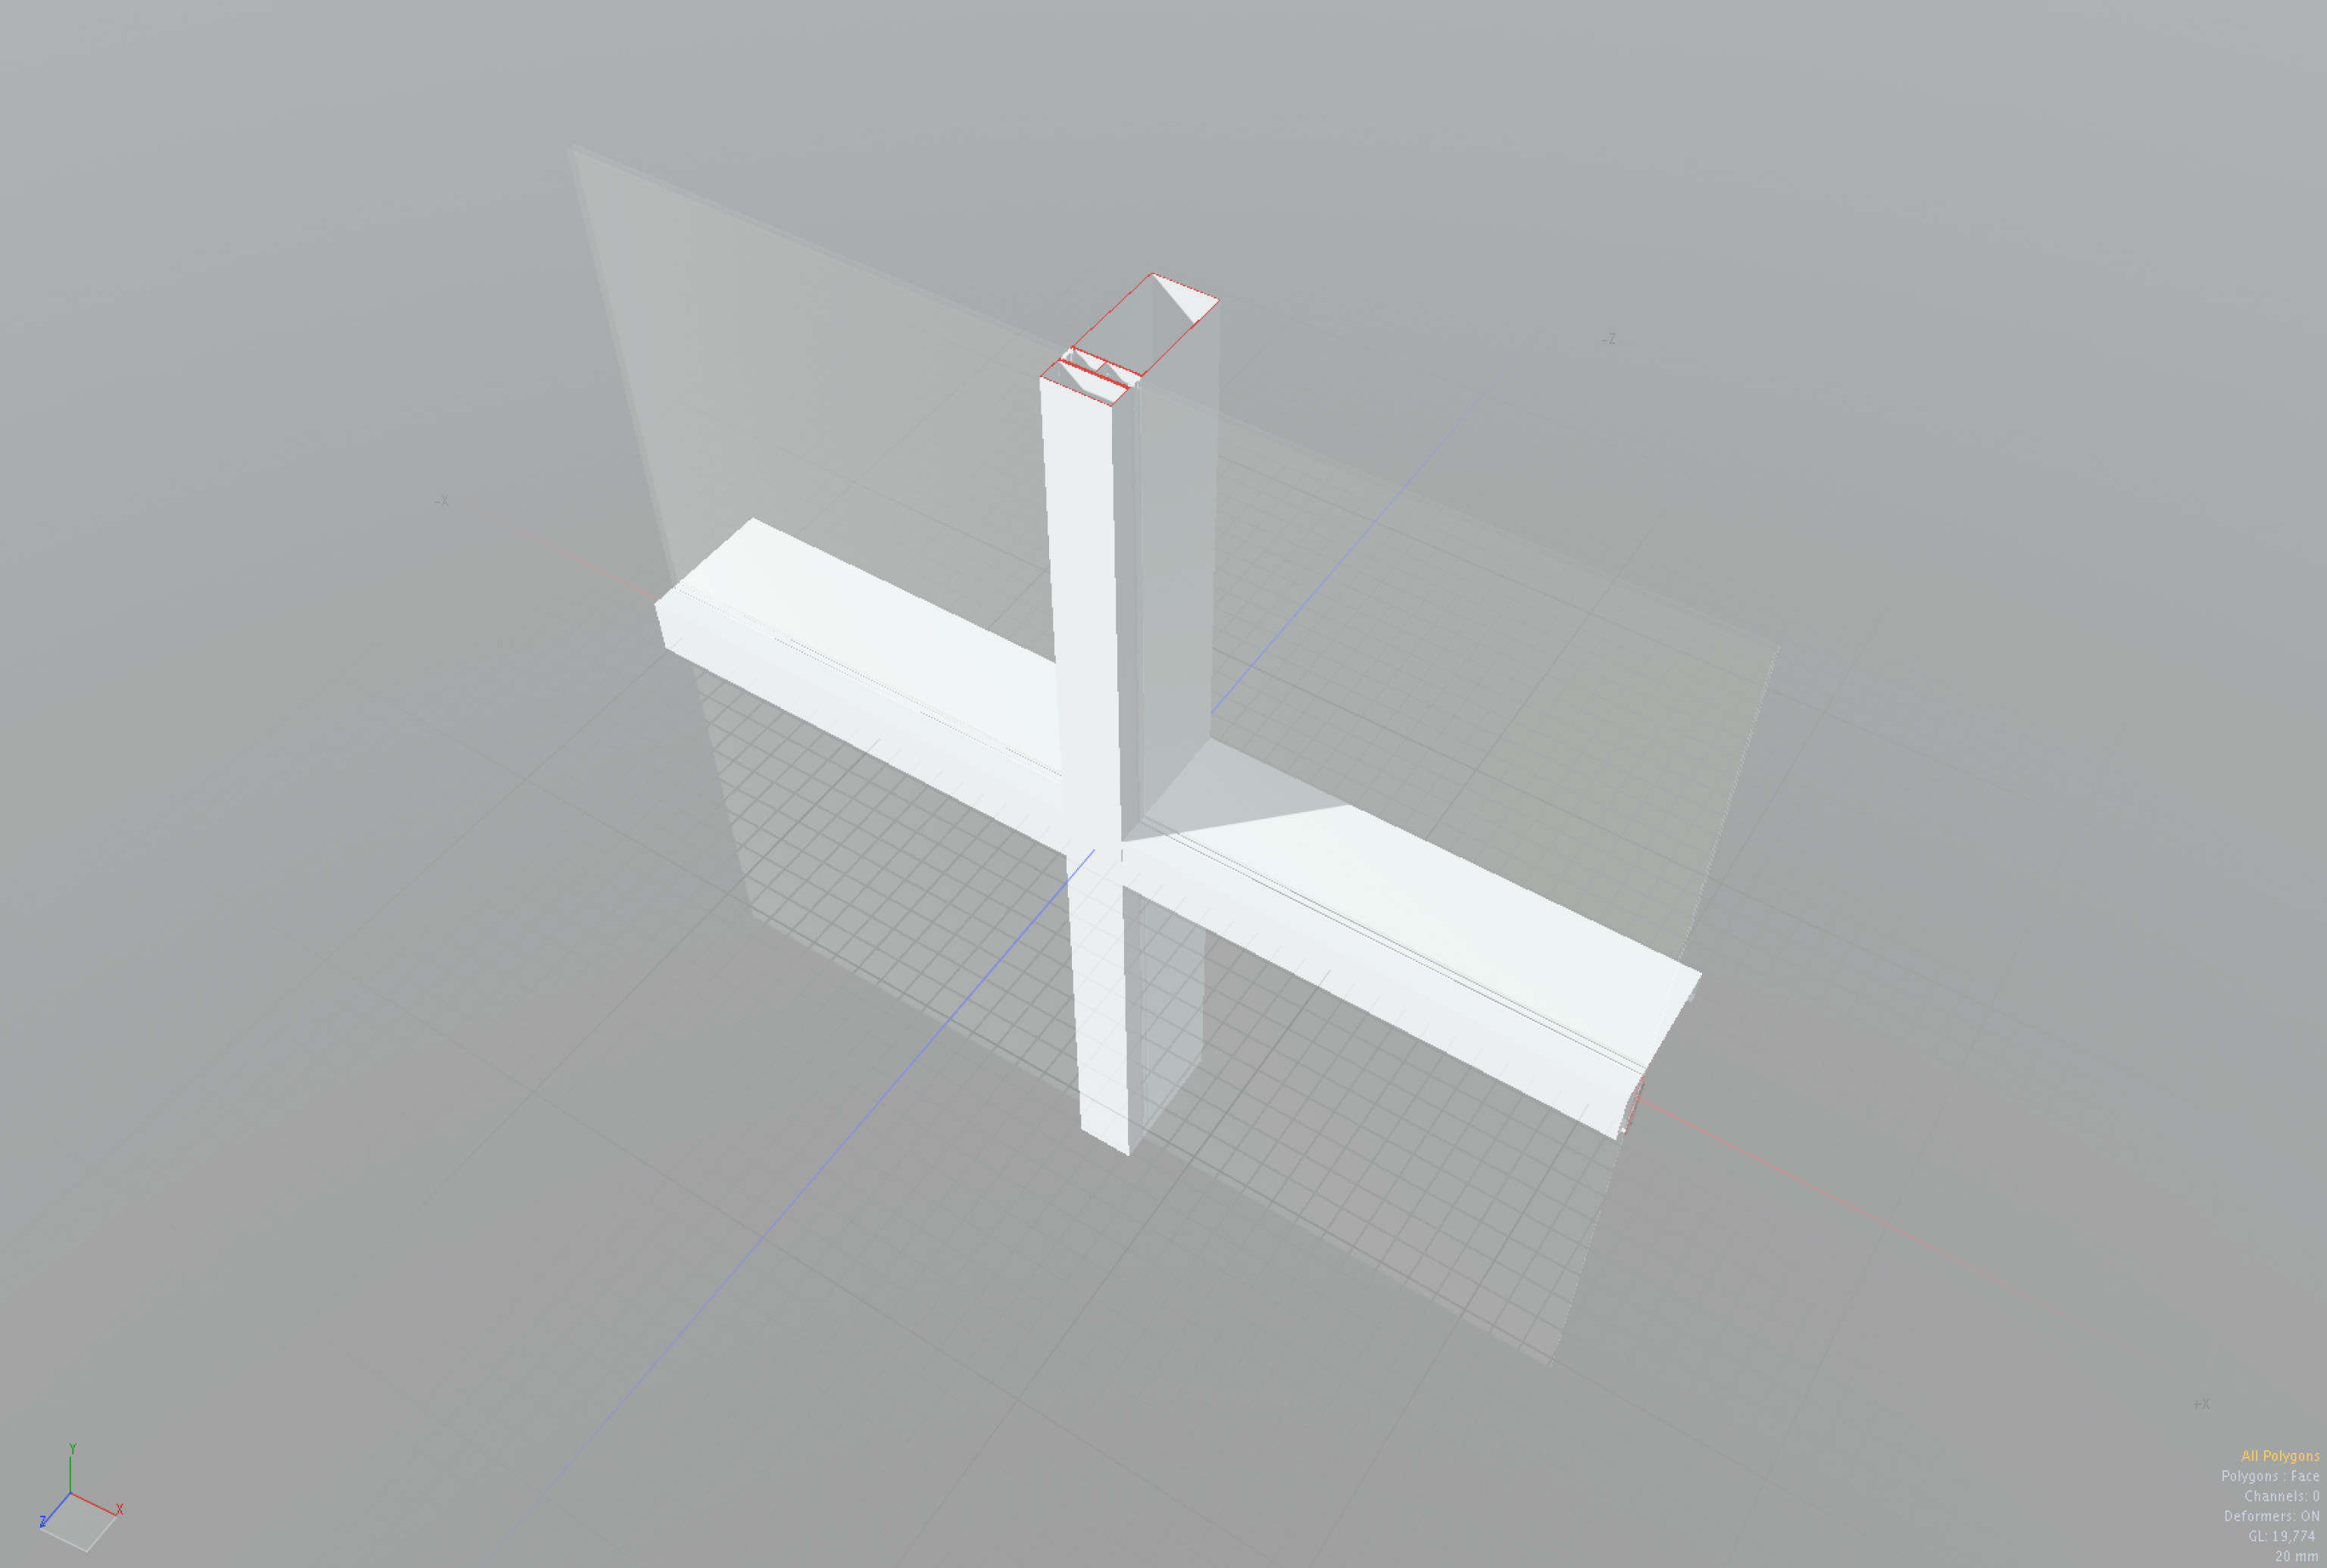 Façade system intersection with sectioned metal mullion profiles